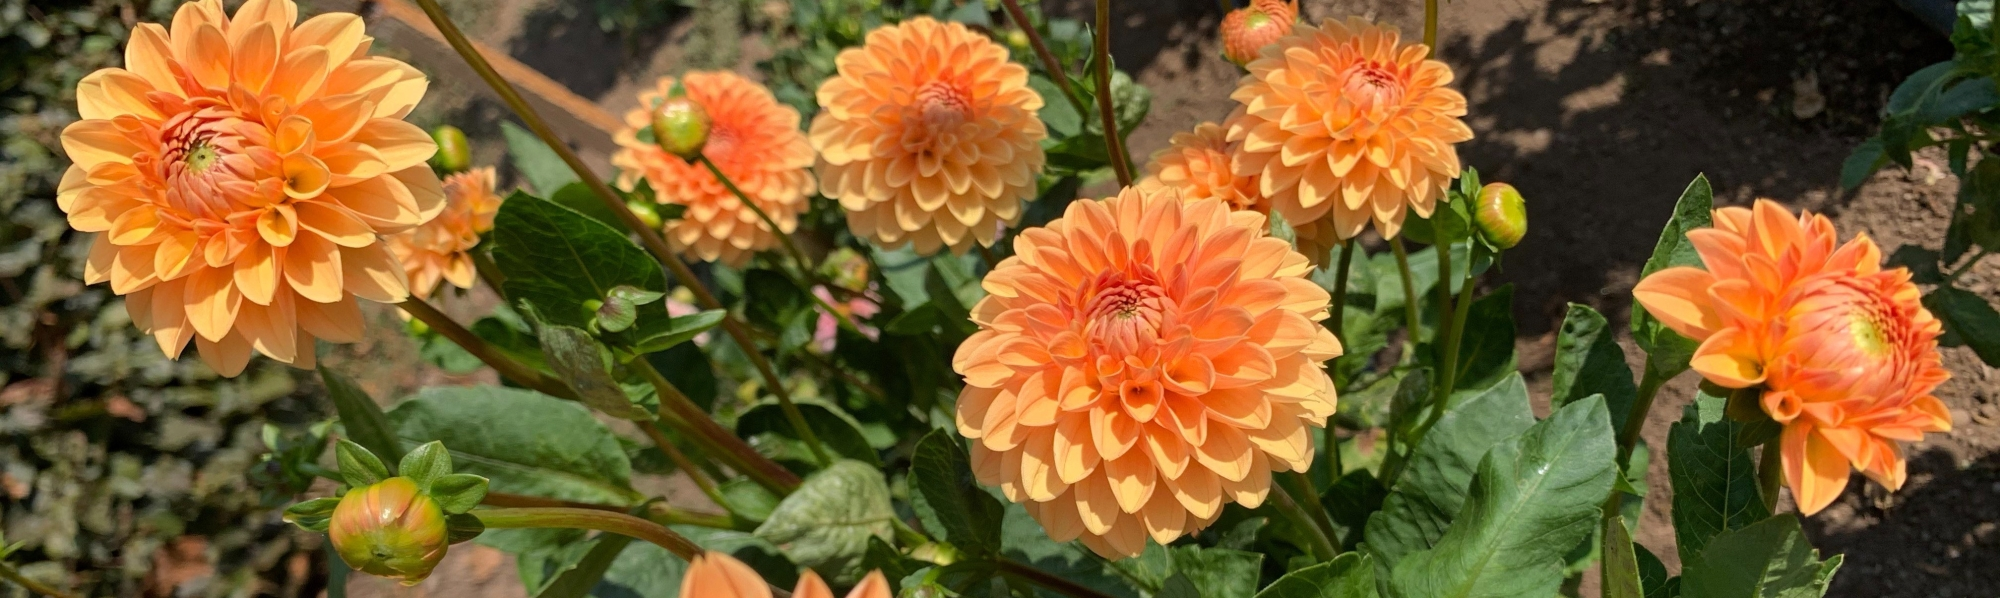 orange dahlias (flowers)